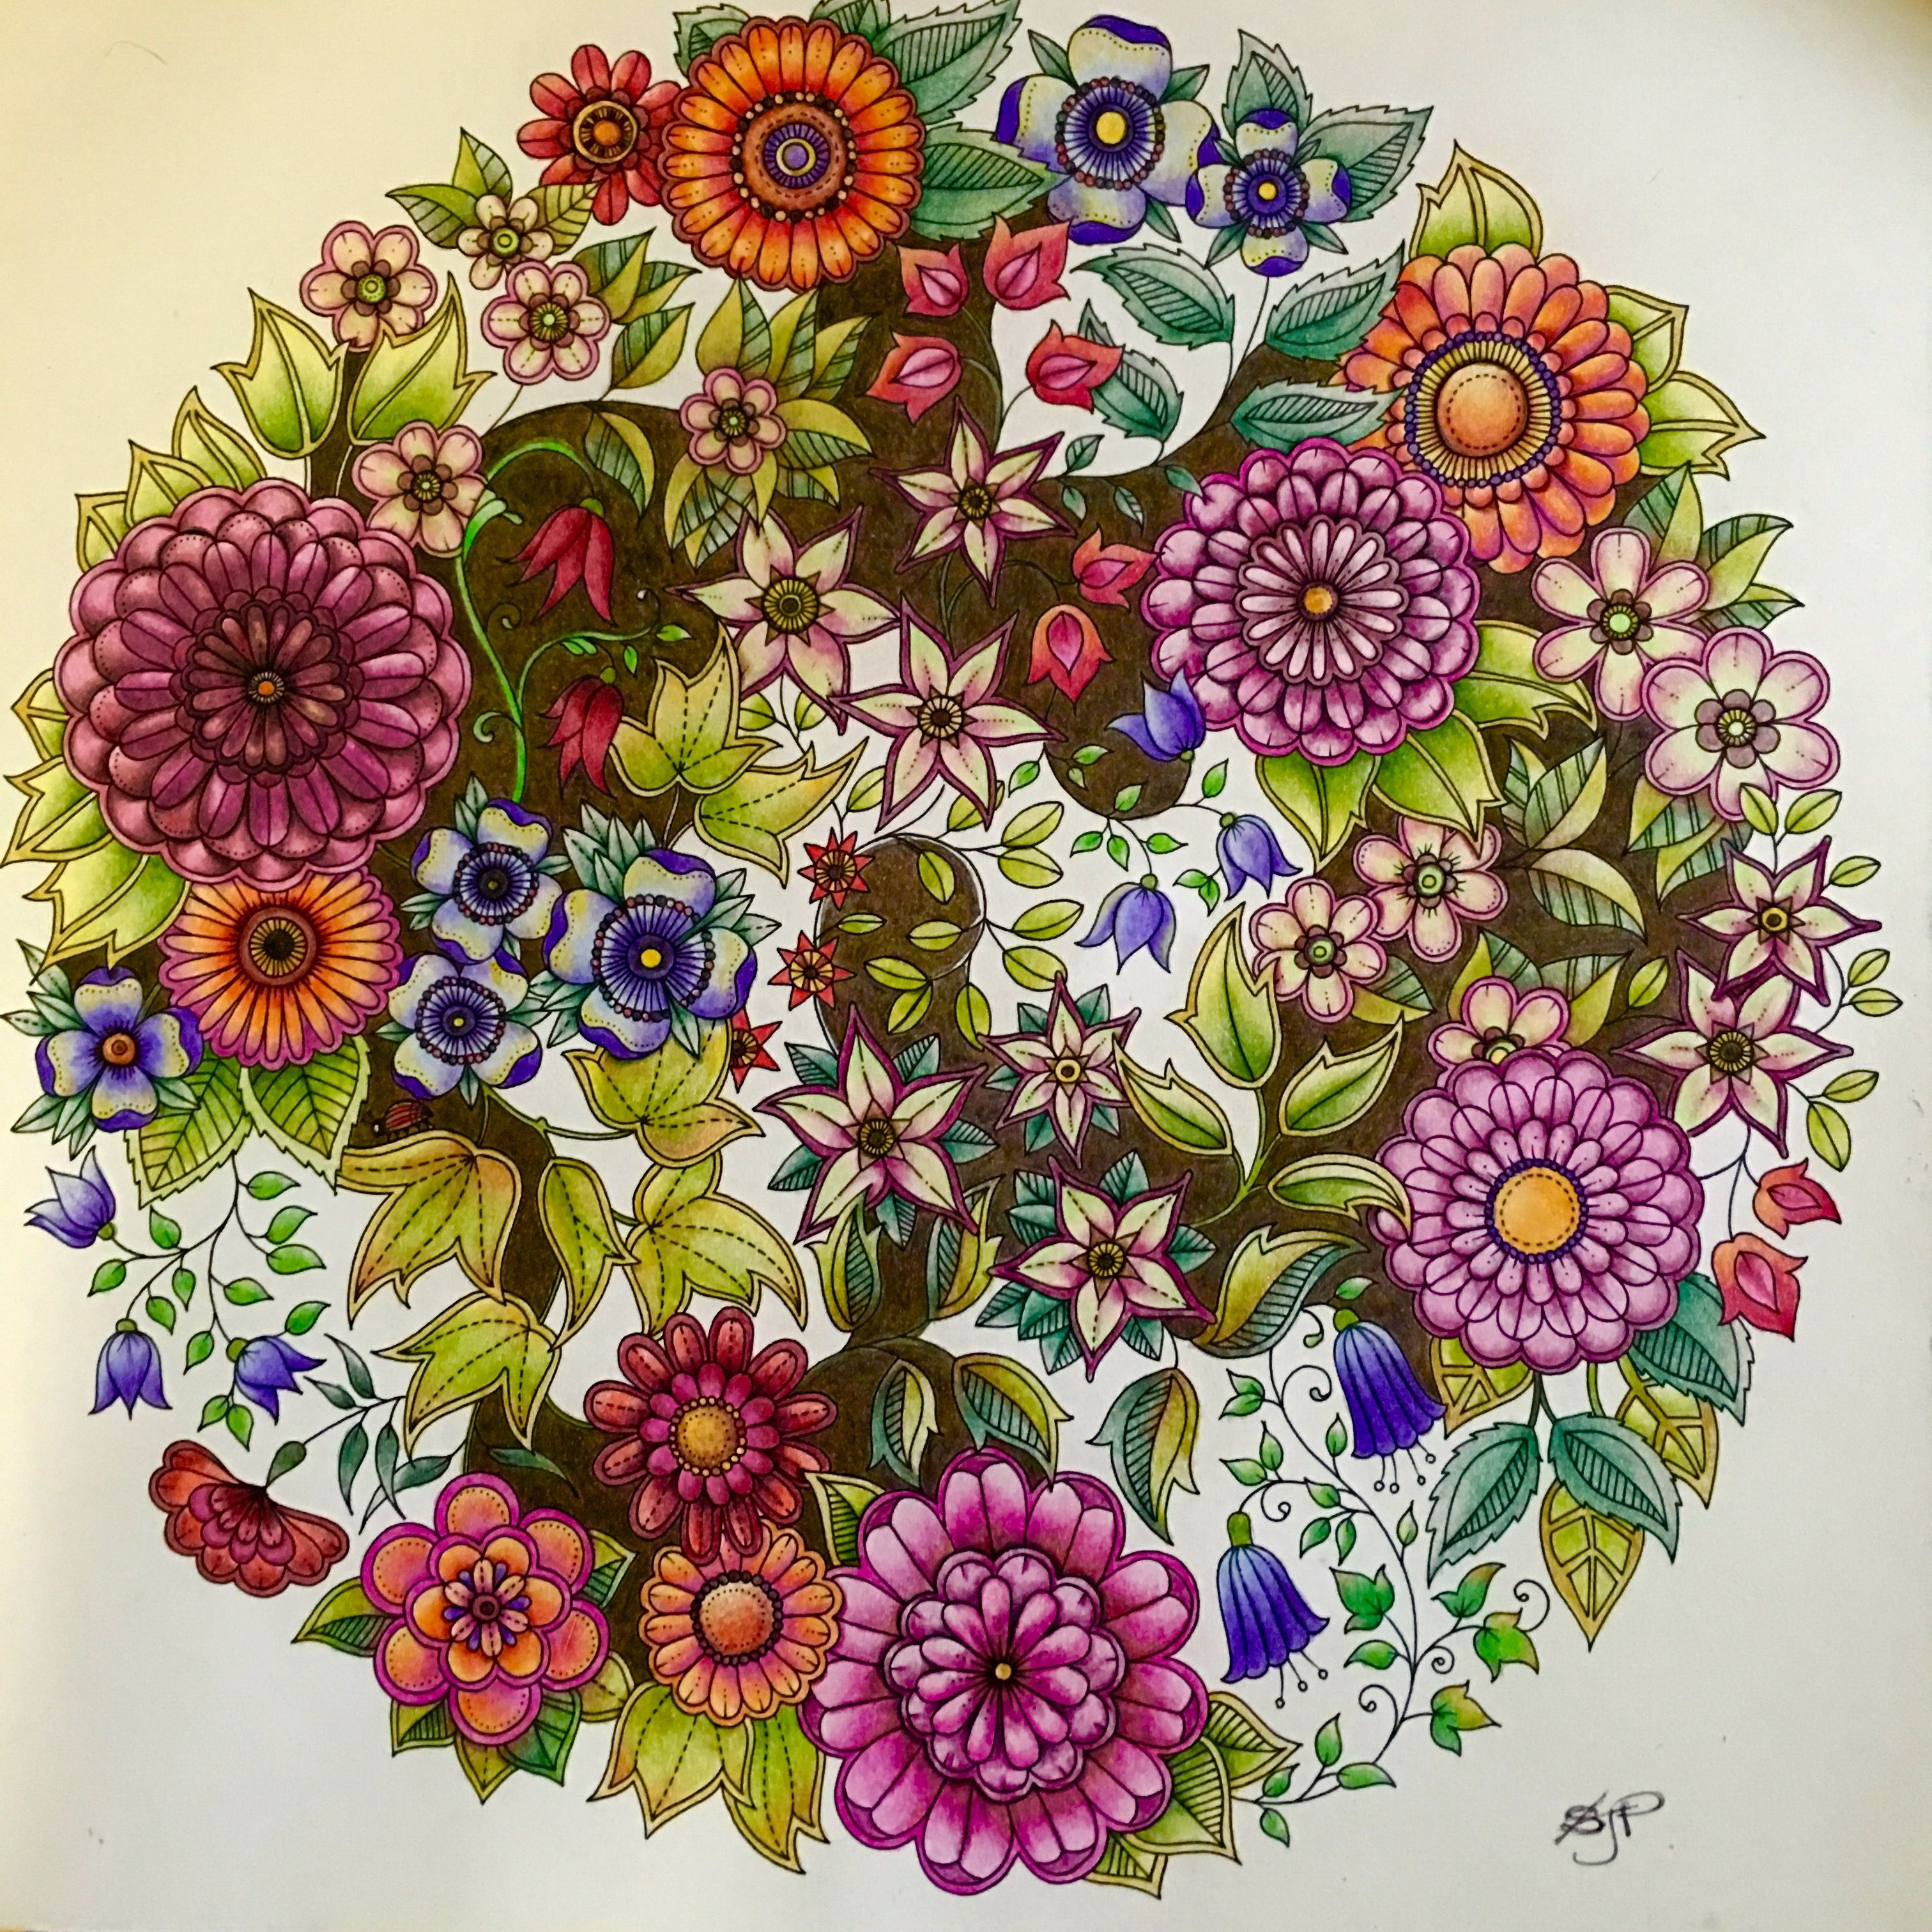 Hooray Finally Finished The 4th Page From Johanna Bas Secret Garden Coloring Book Inspiration Secret Garden Coloring Book Finished Secret Garden Coloring Book